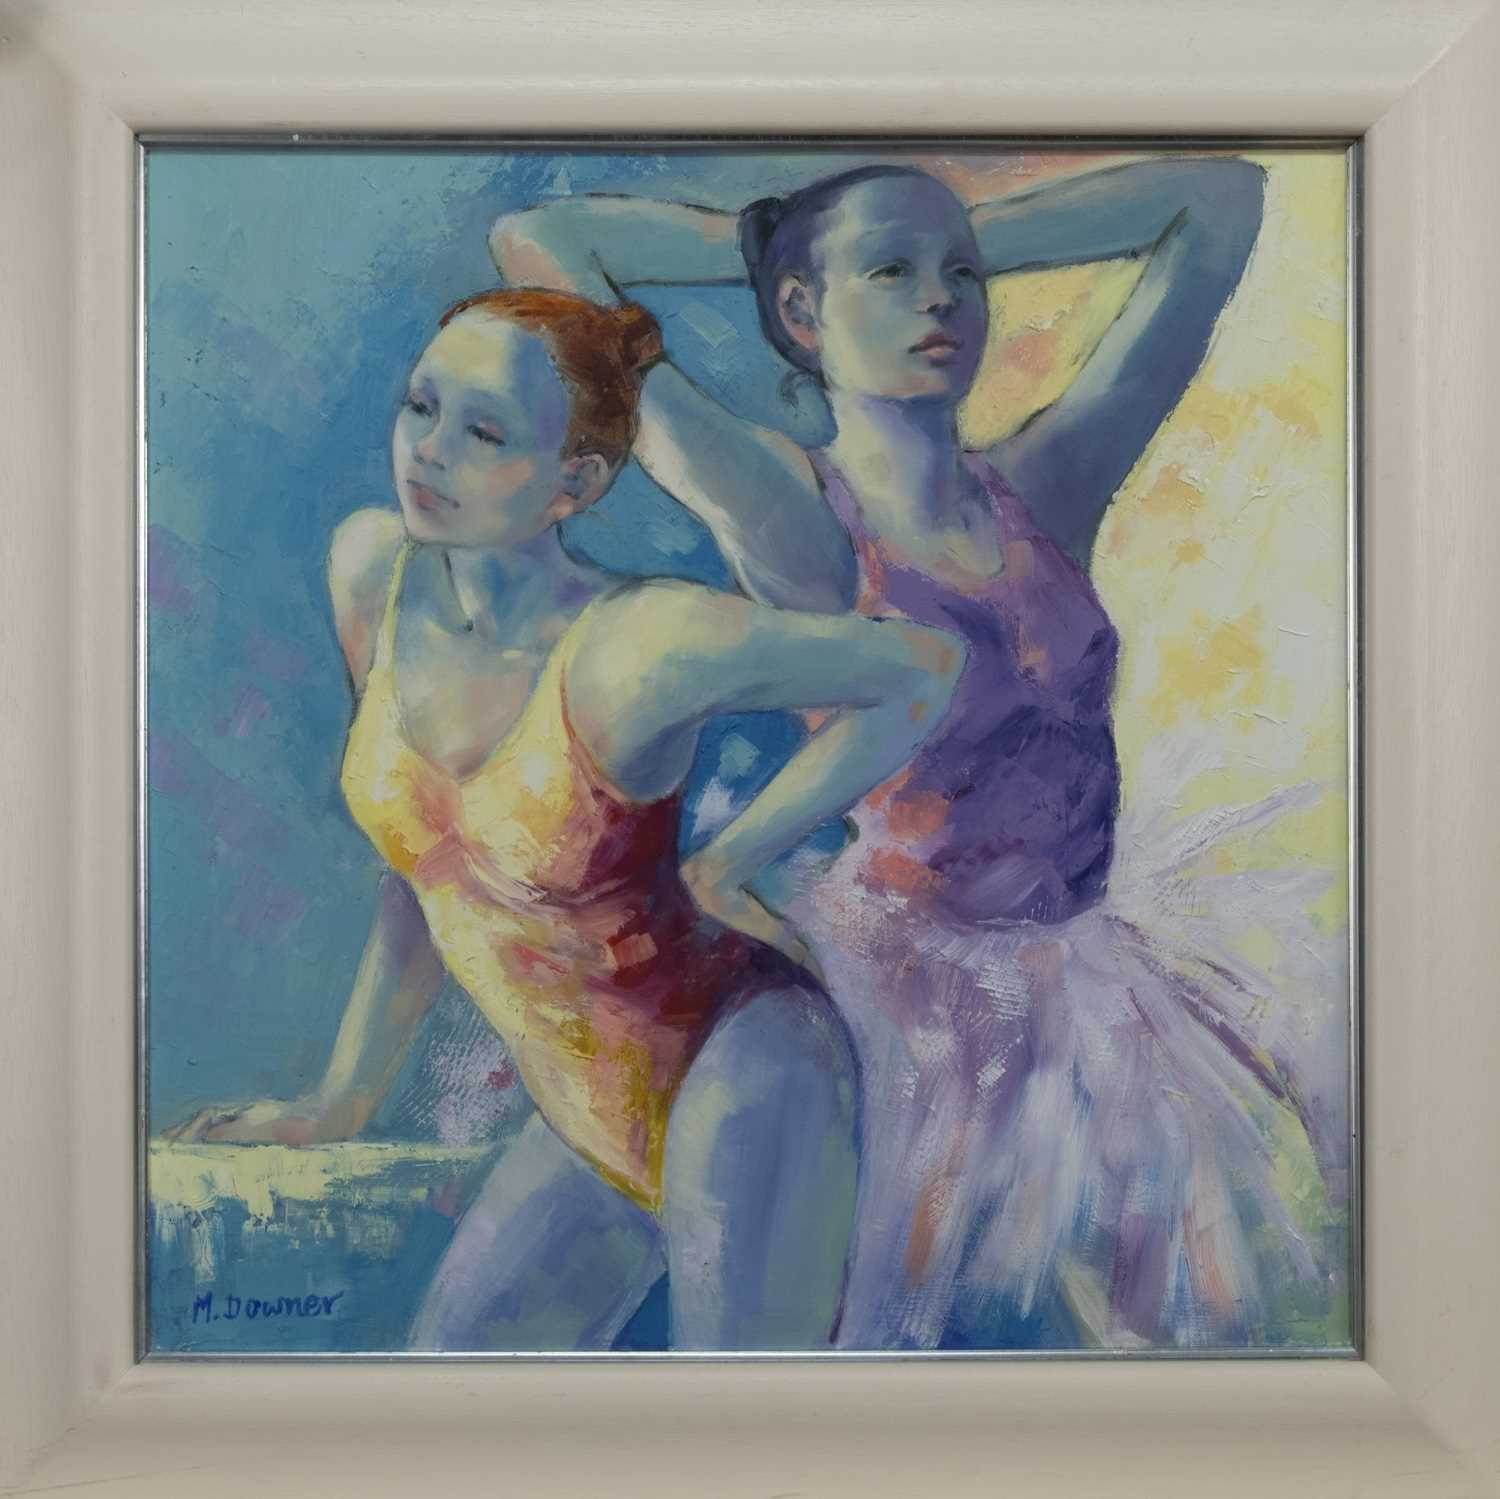 Lot 515 - PAUSE, AN OIL BY MAGGIE DOWNER